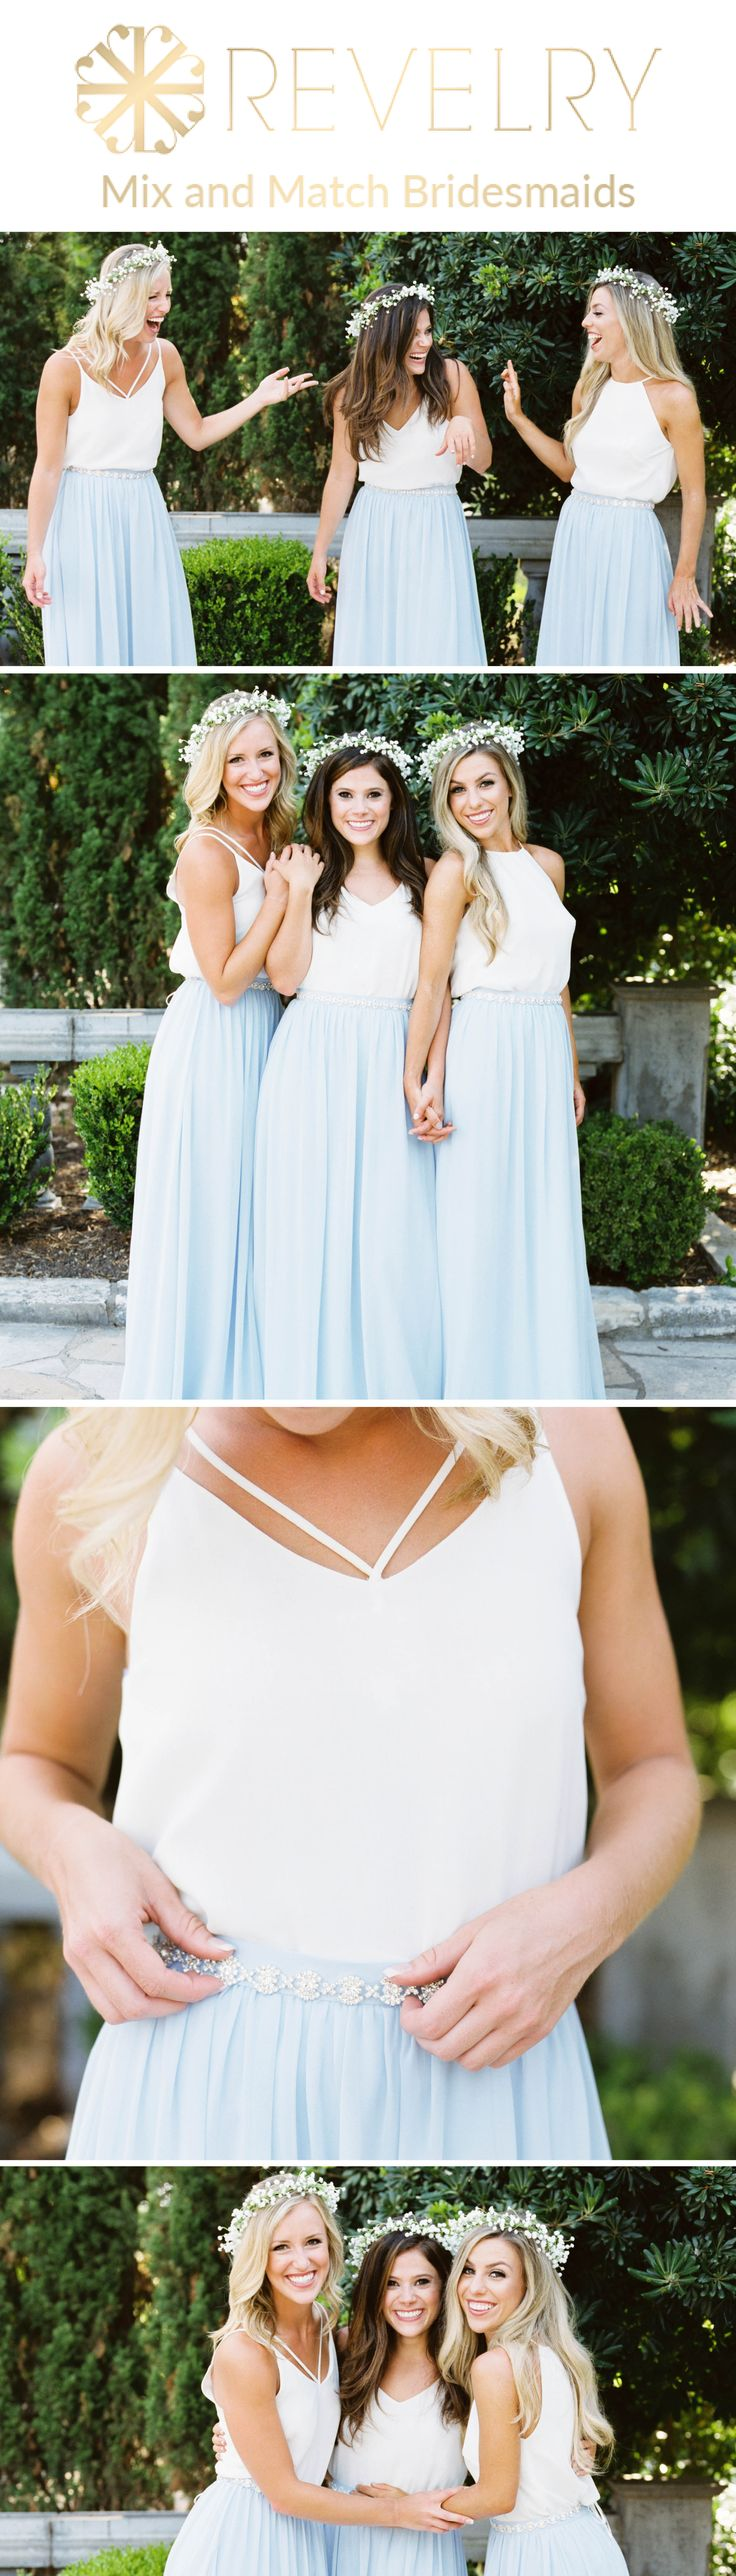 Mix and Match Revelry Bridesmaid Dresses and Separates.Revelry has a wide selection of unique bridesmaids dresses including tulle skirts, classic chif...